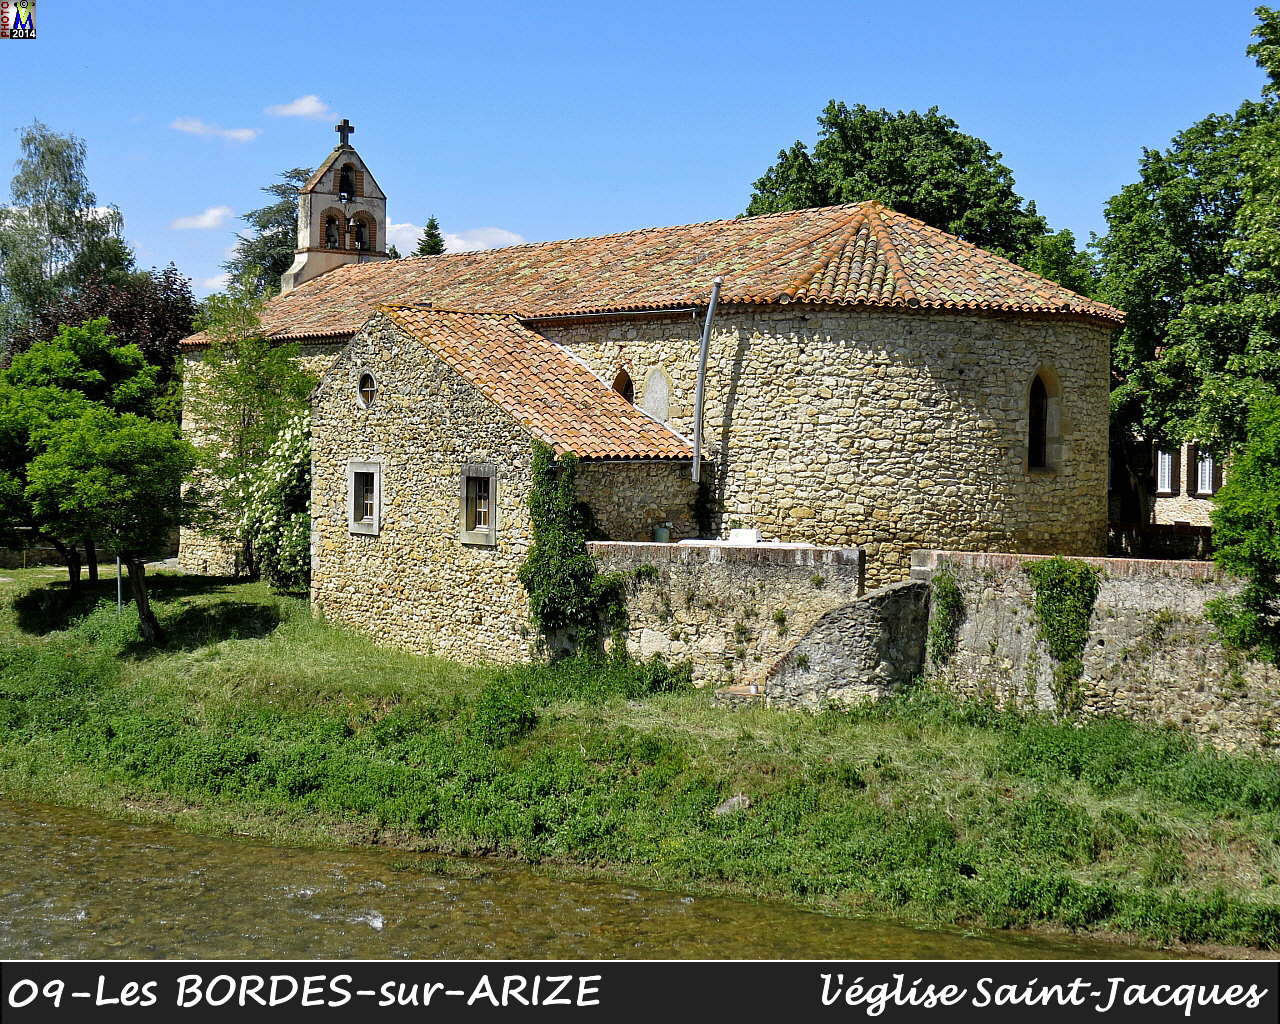 09BORDES-ARIZE_eglise_100.jpg